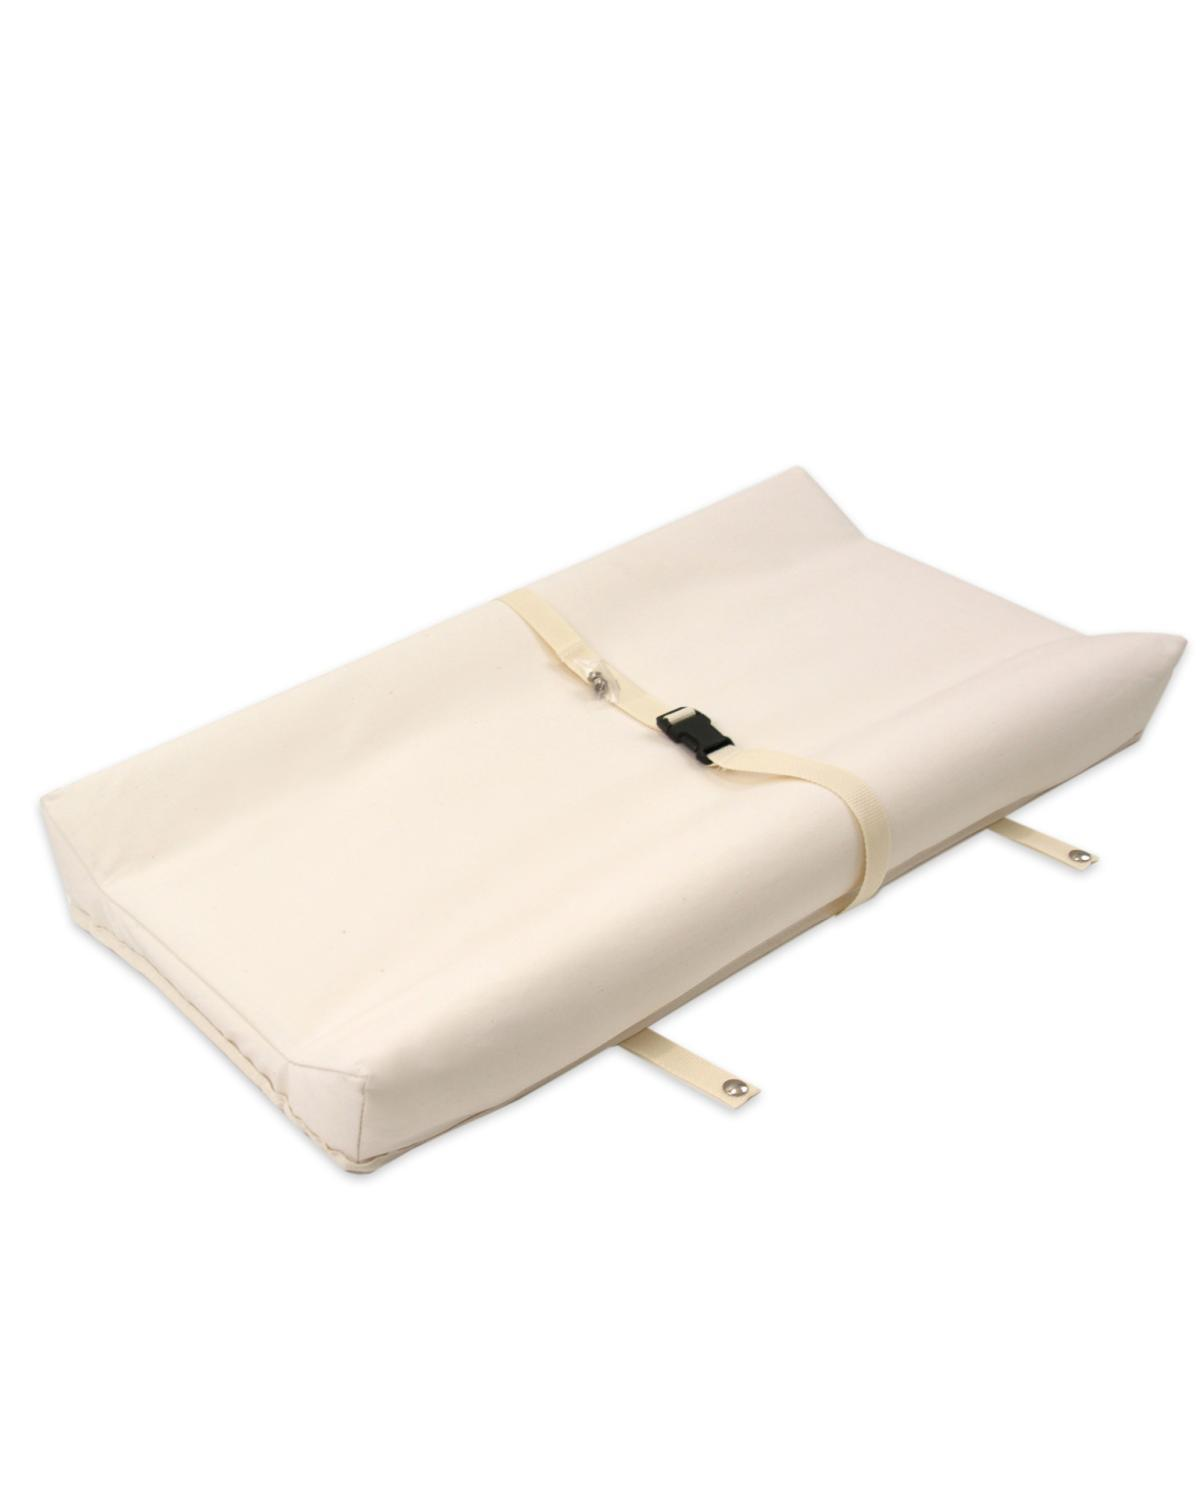 Little naturepedic room 2-Sided No-Compromise Organic Cotton Changing Pad in Natural